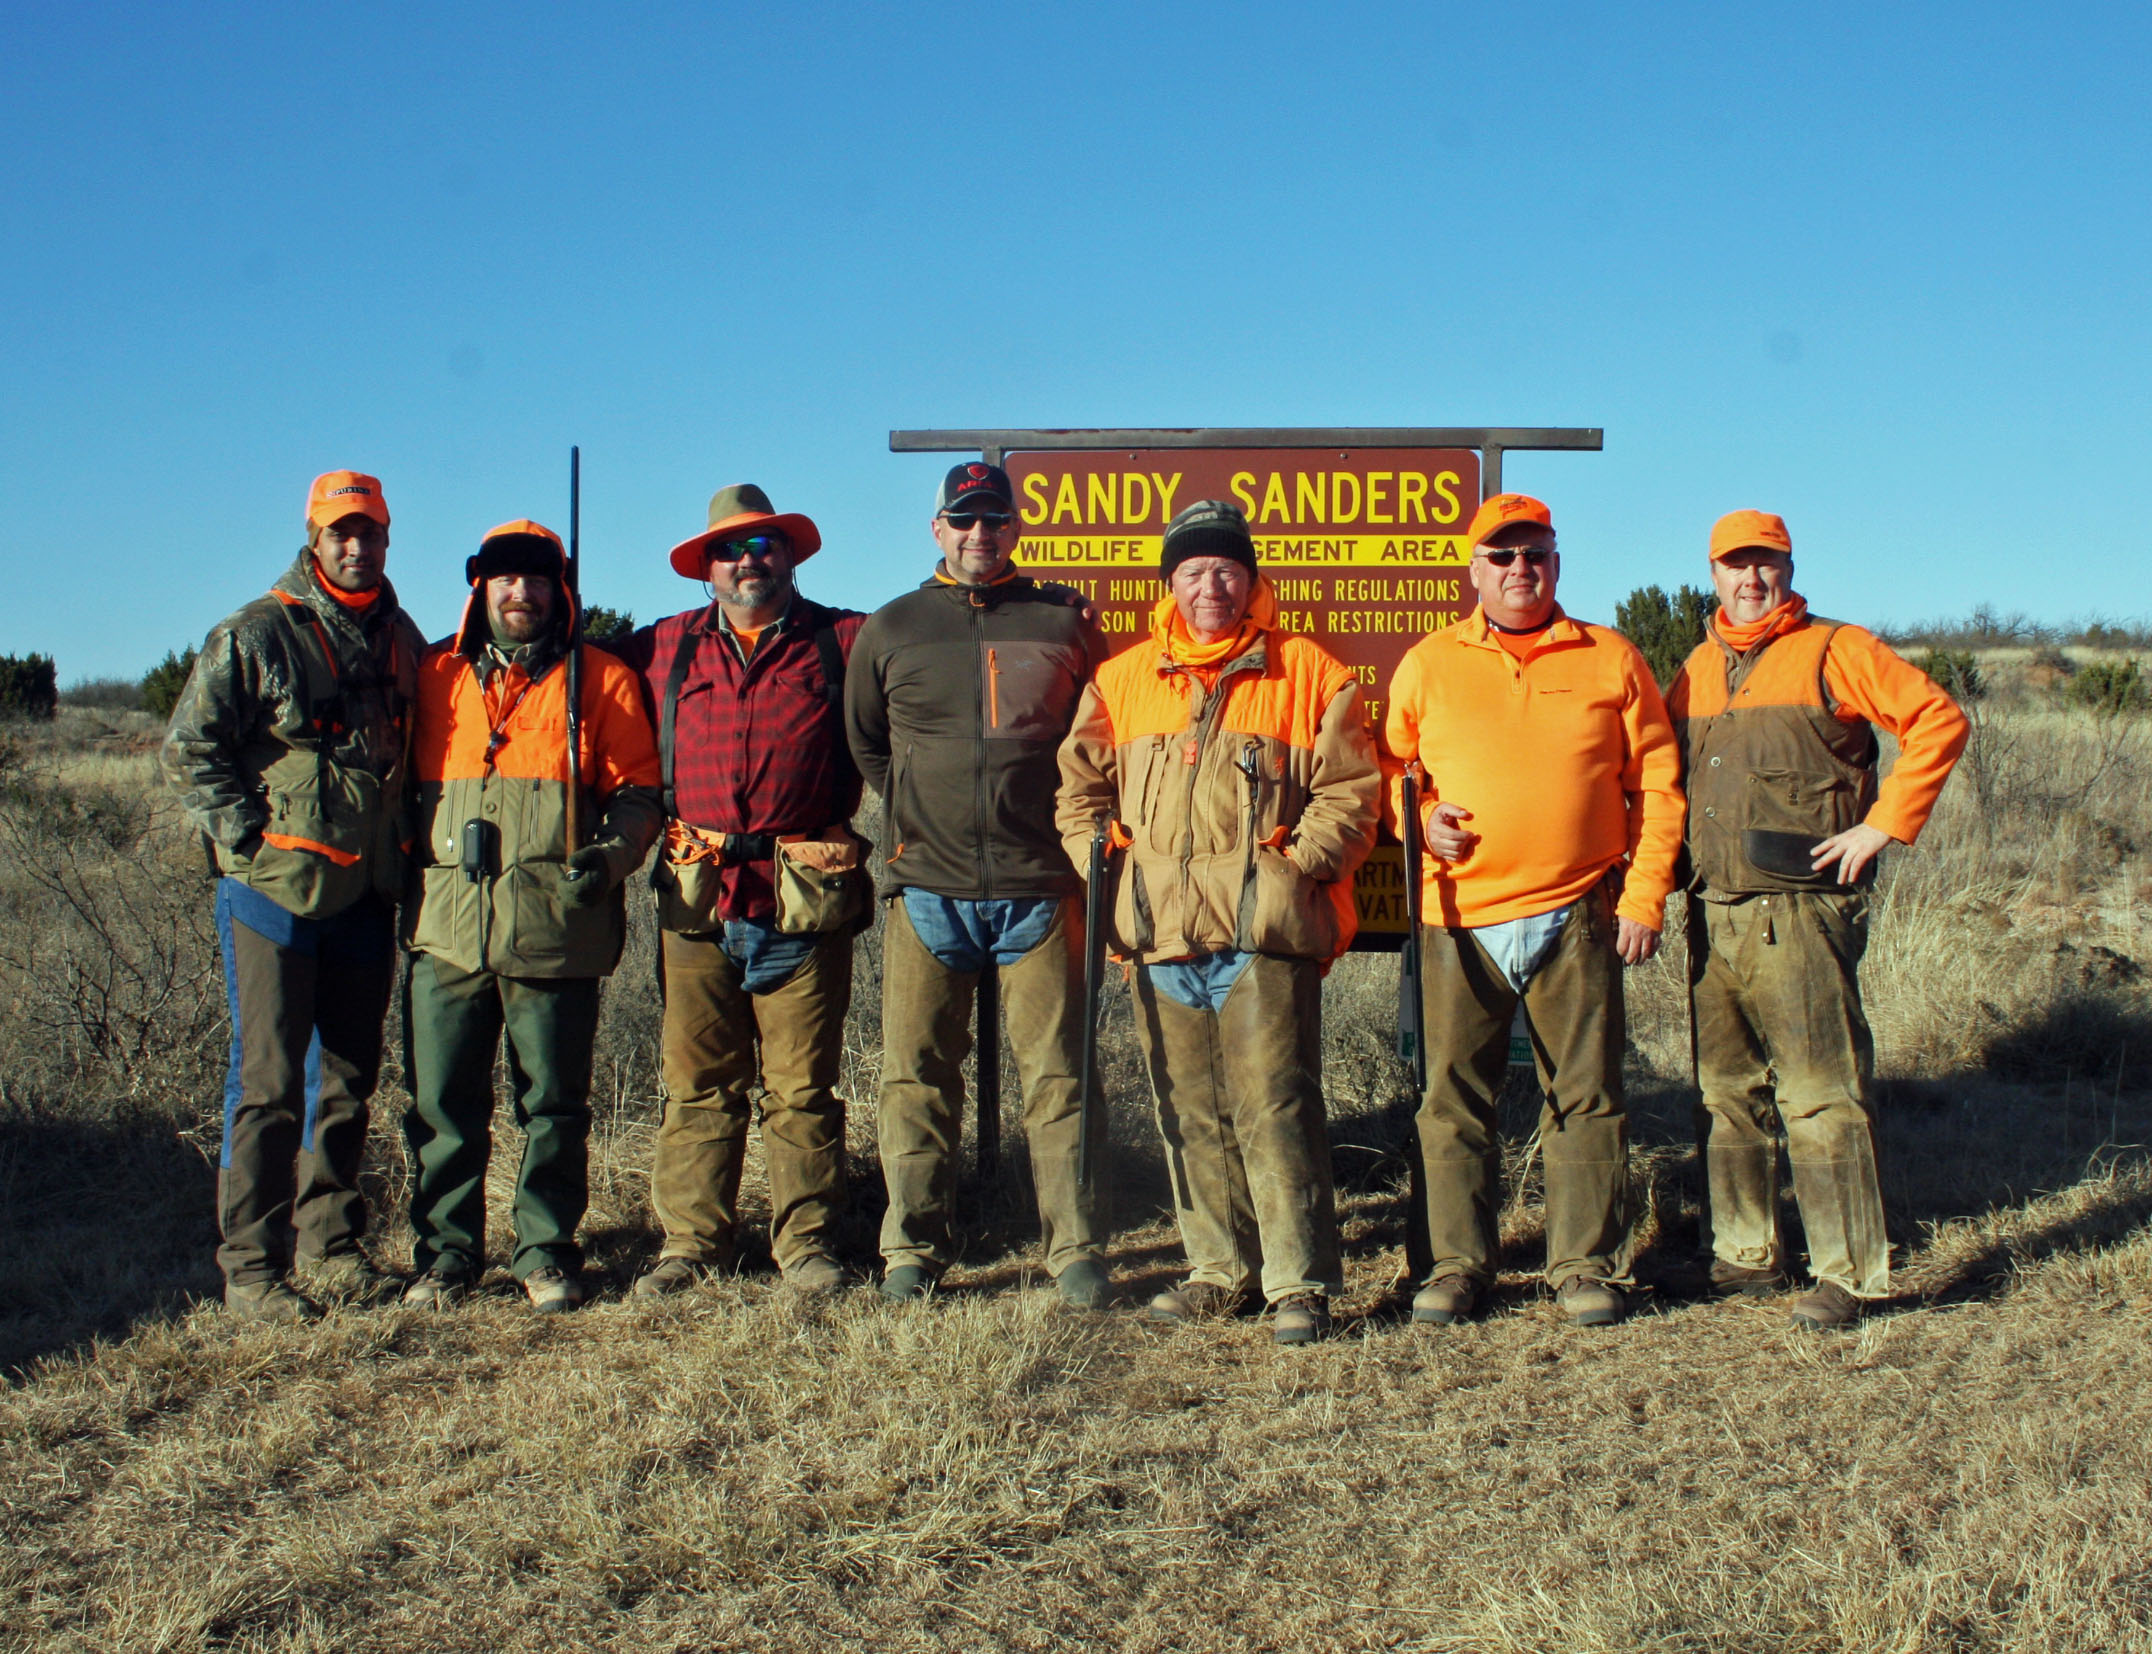 Lone Star quail/pheasant forever hunt at sandy sanders in ok december 2016